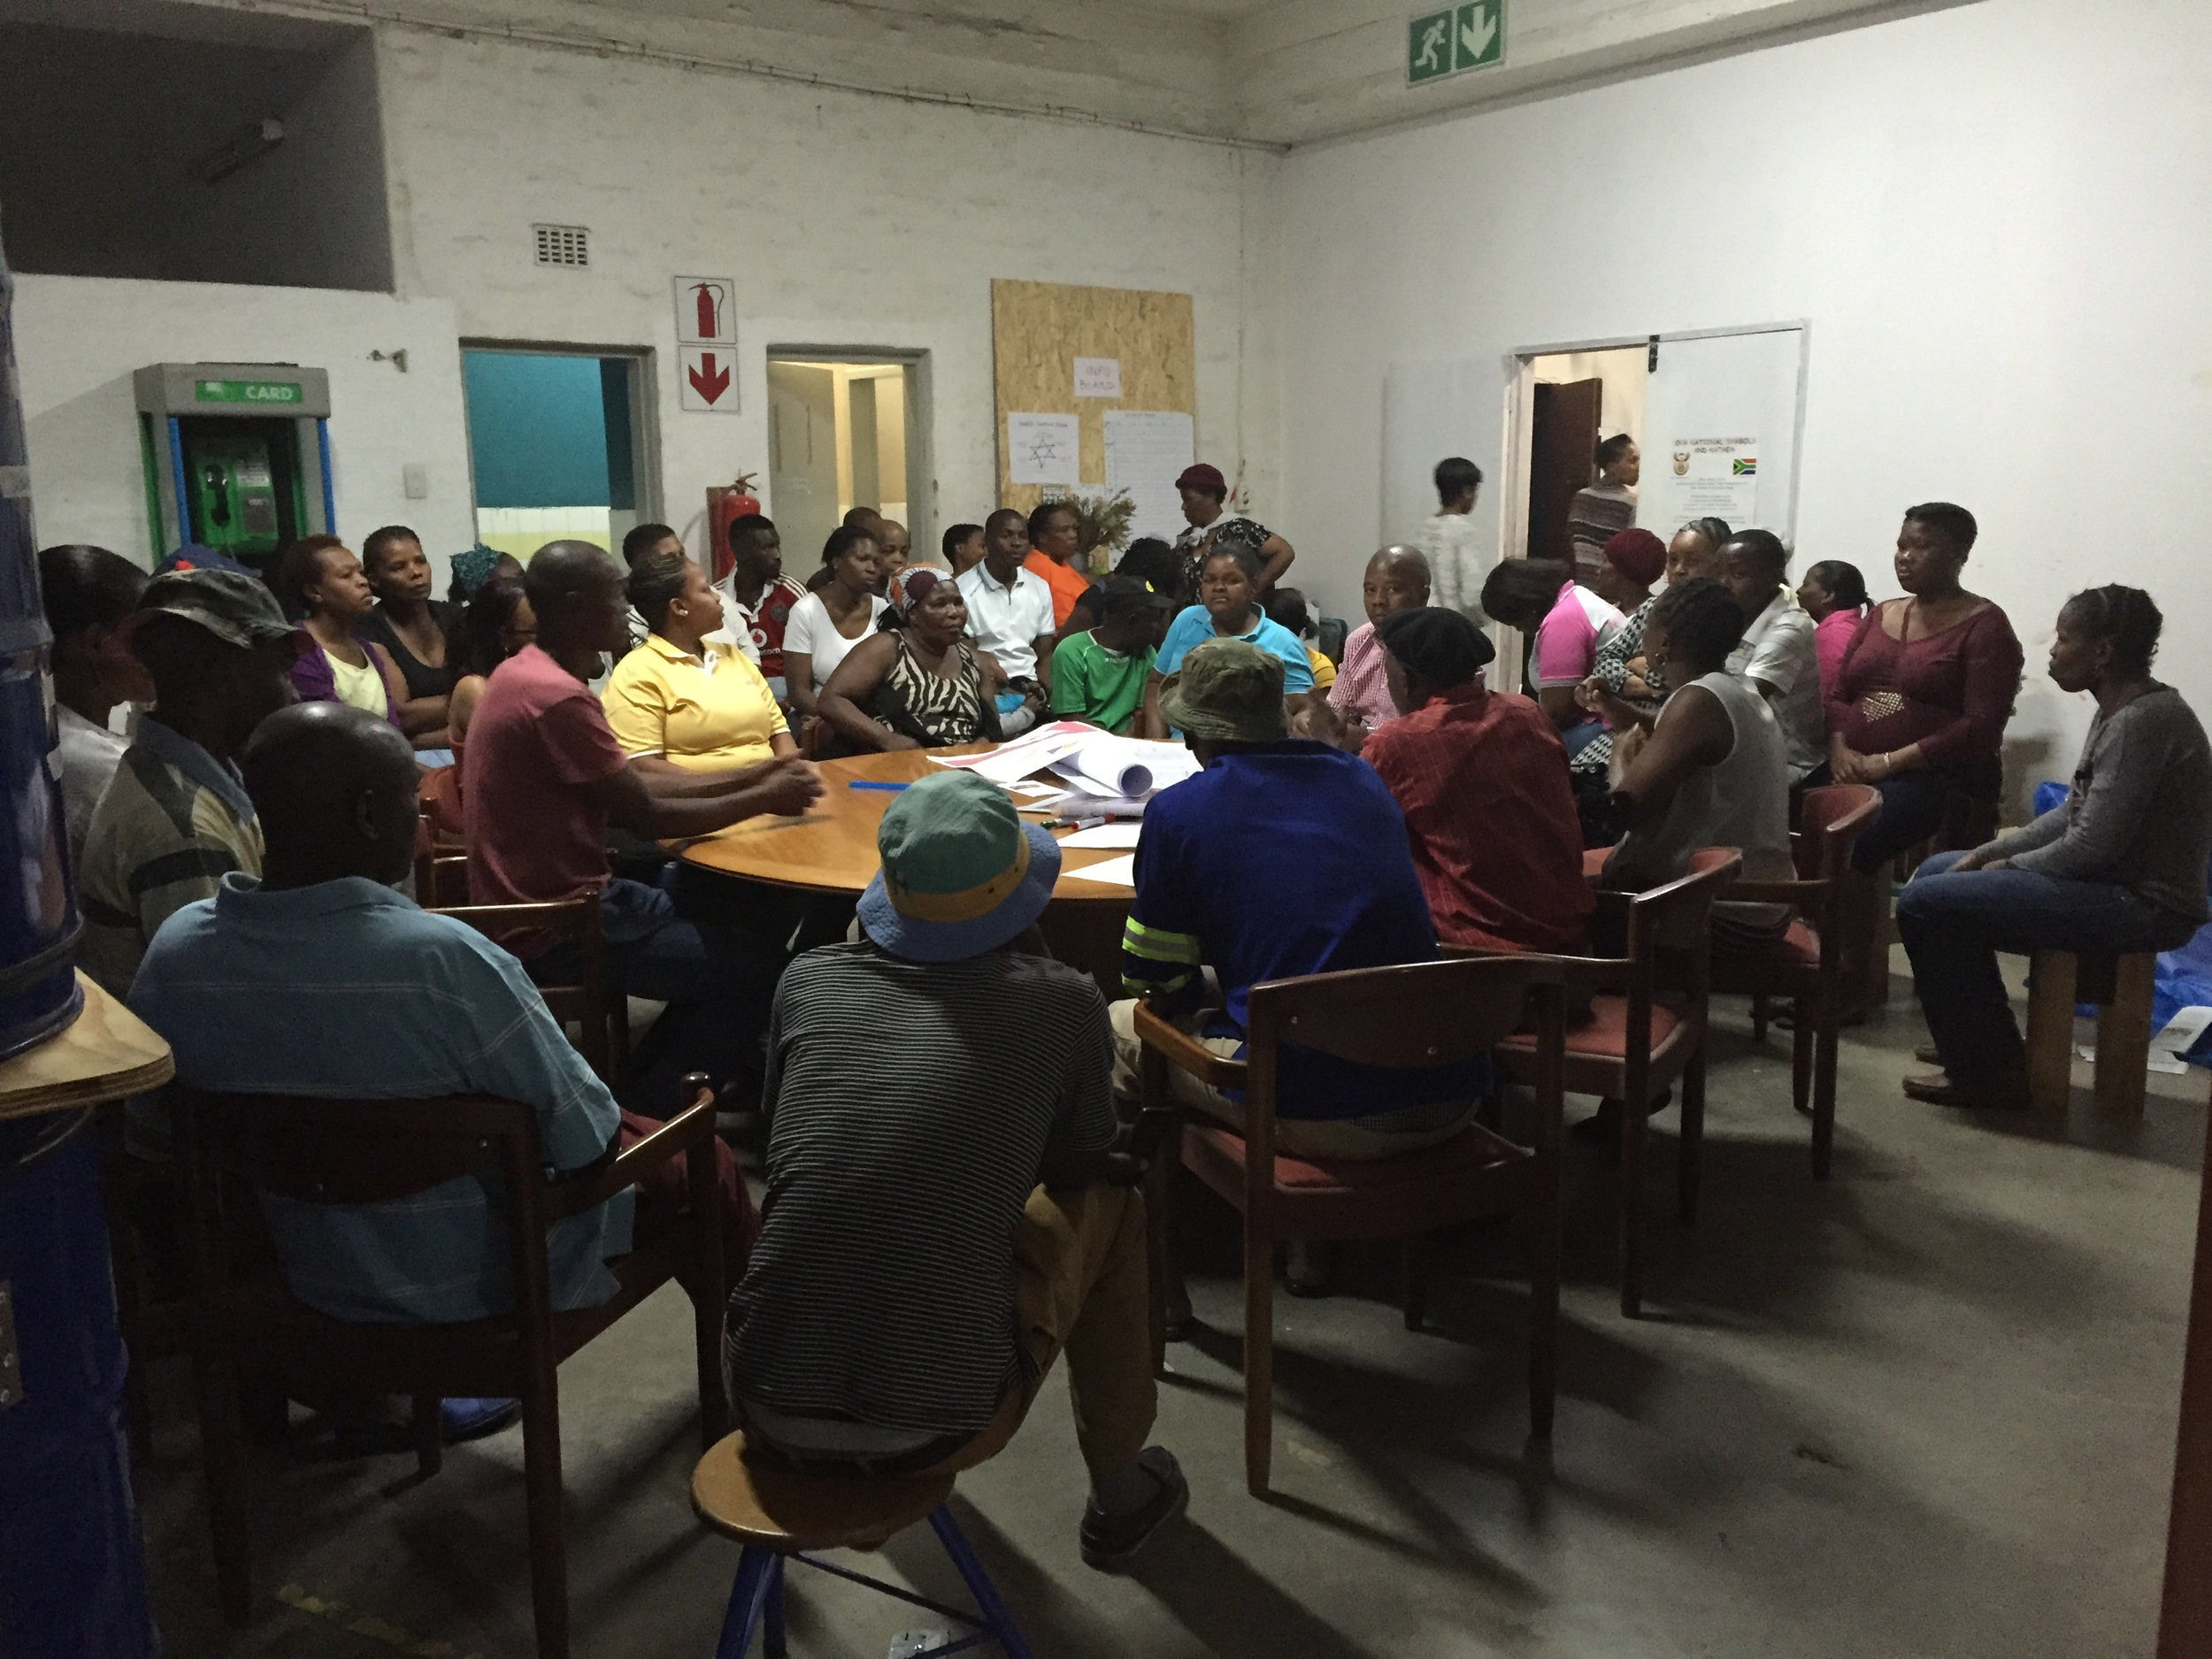 Community forum meeting taking place in Bjala Square